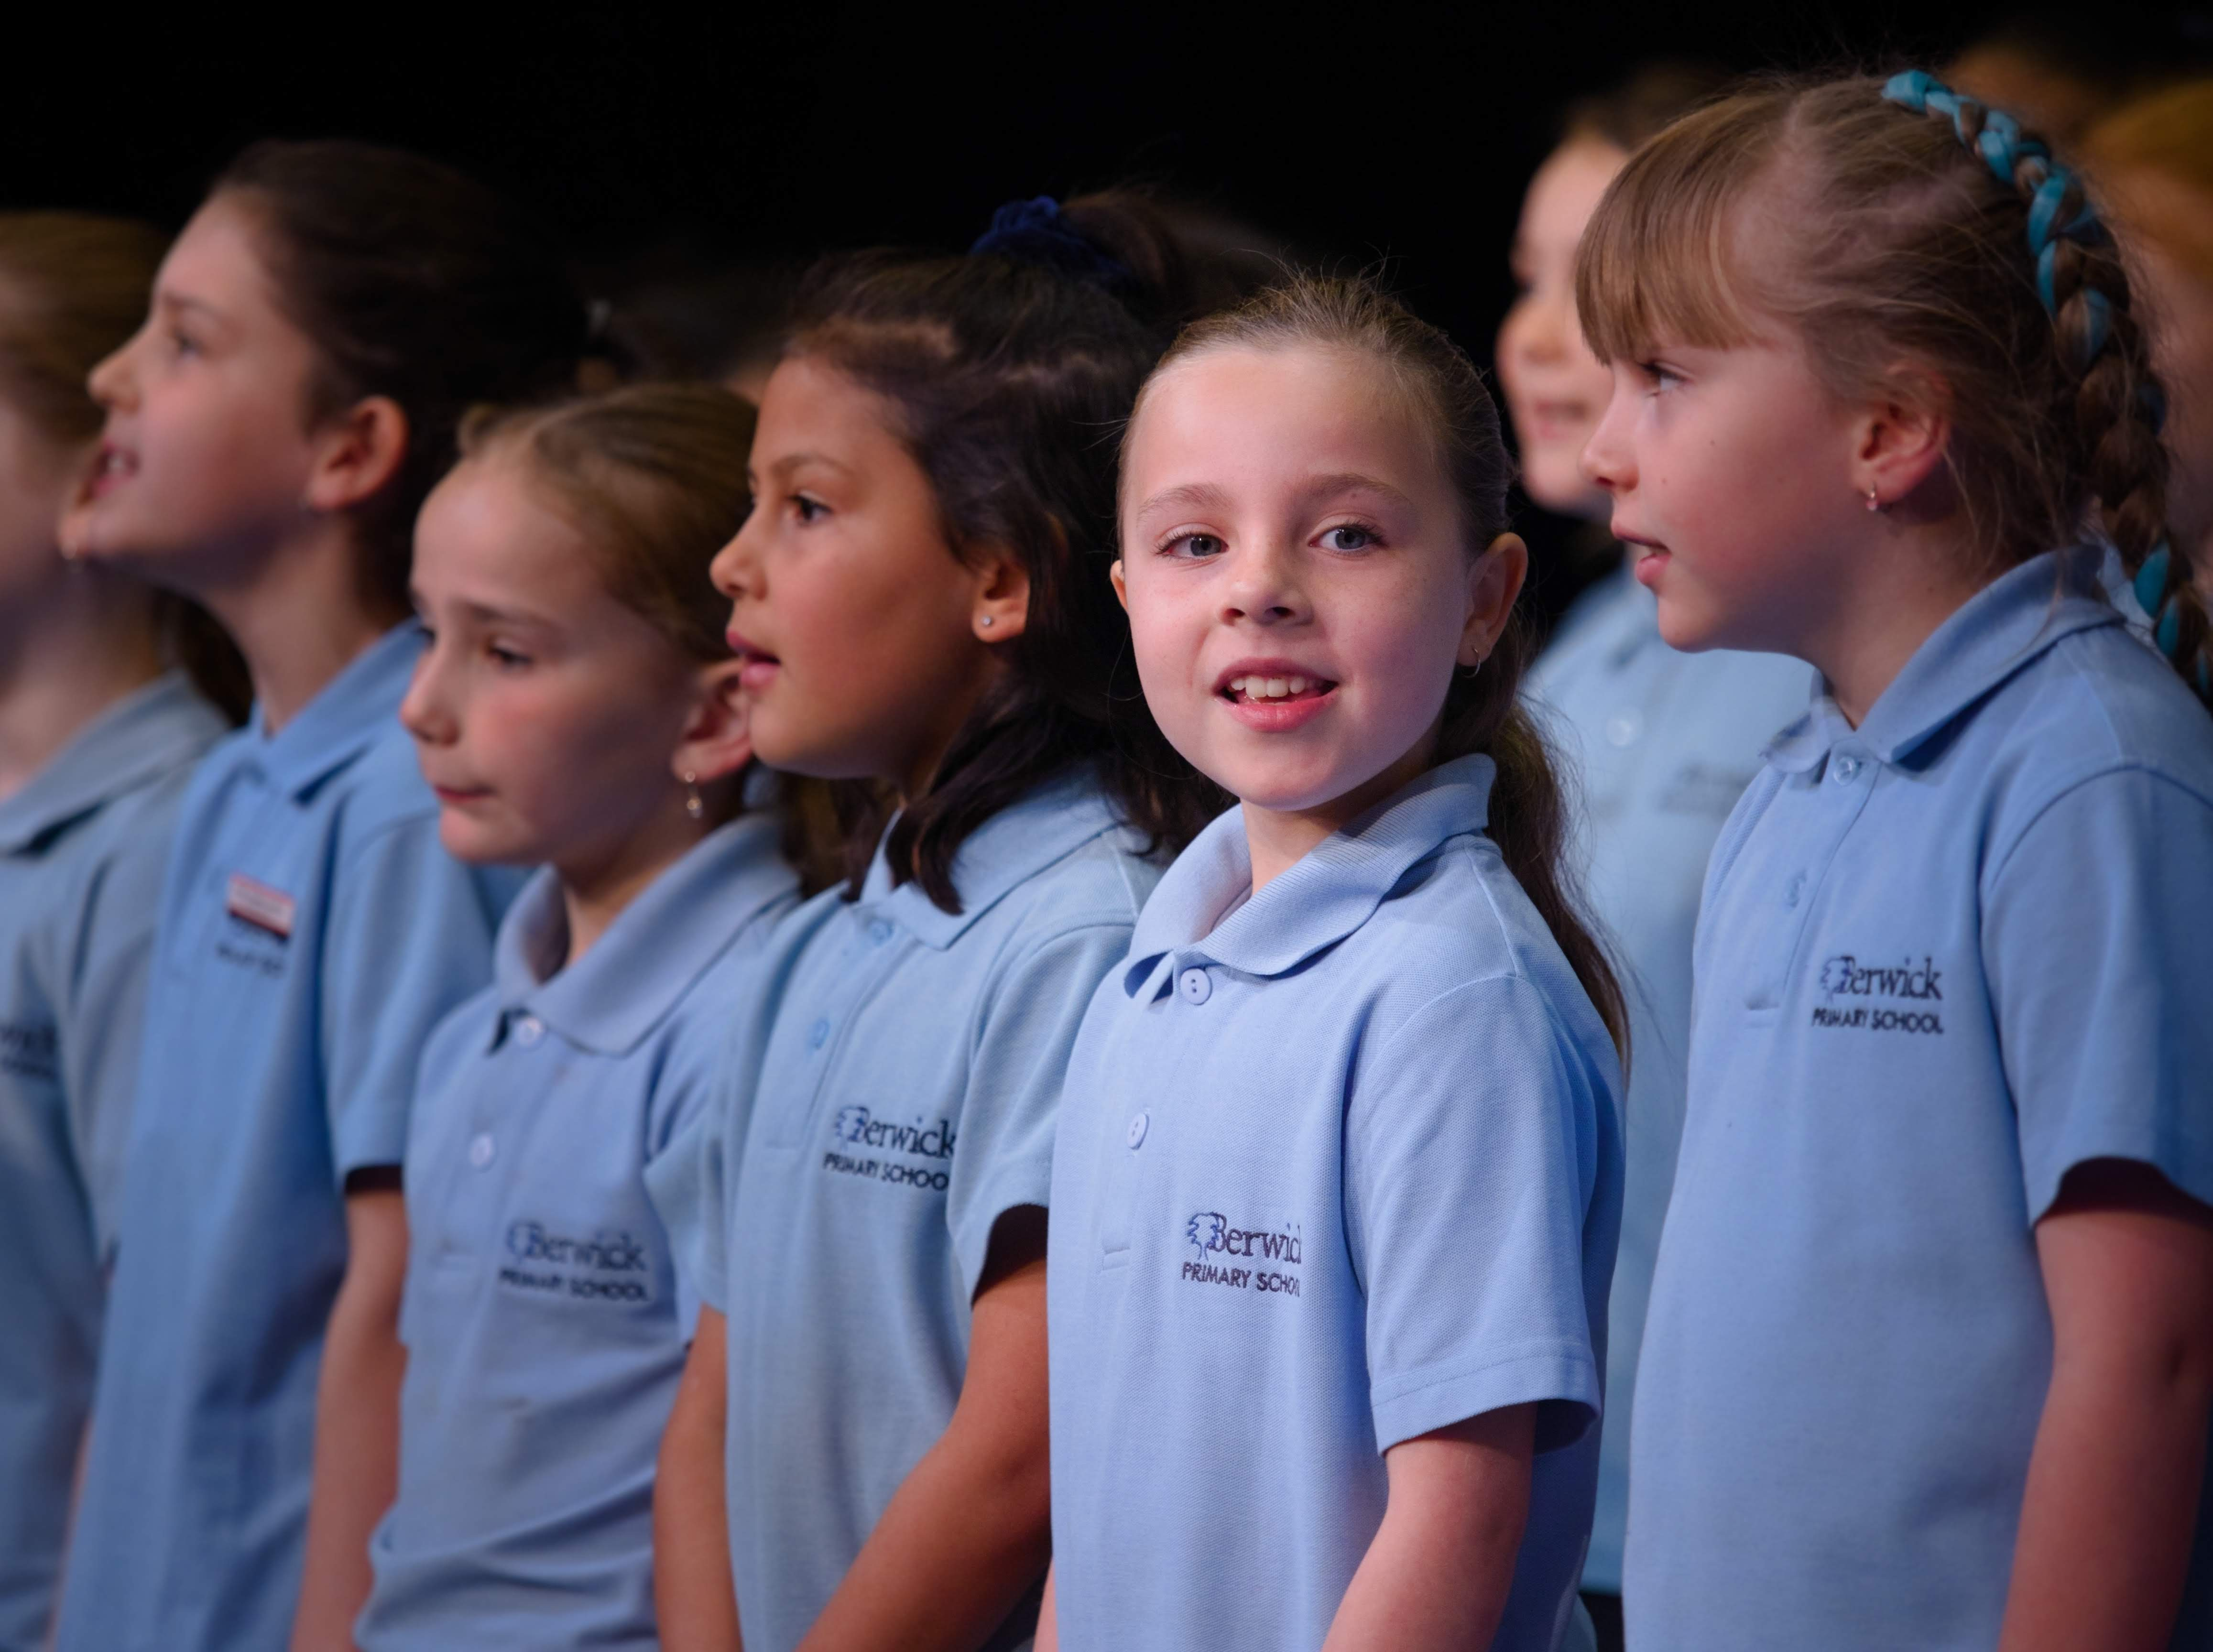 WGE Choral Berwick Primary School Grade 3 Choir Perform